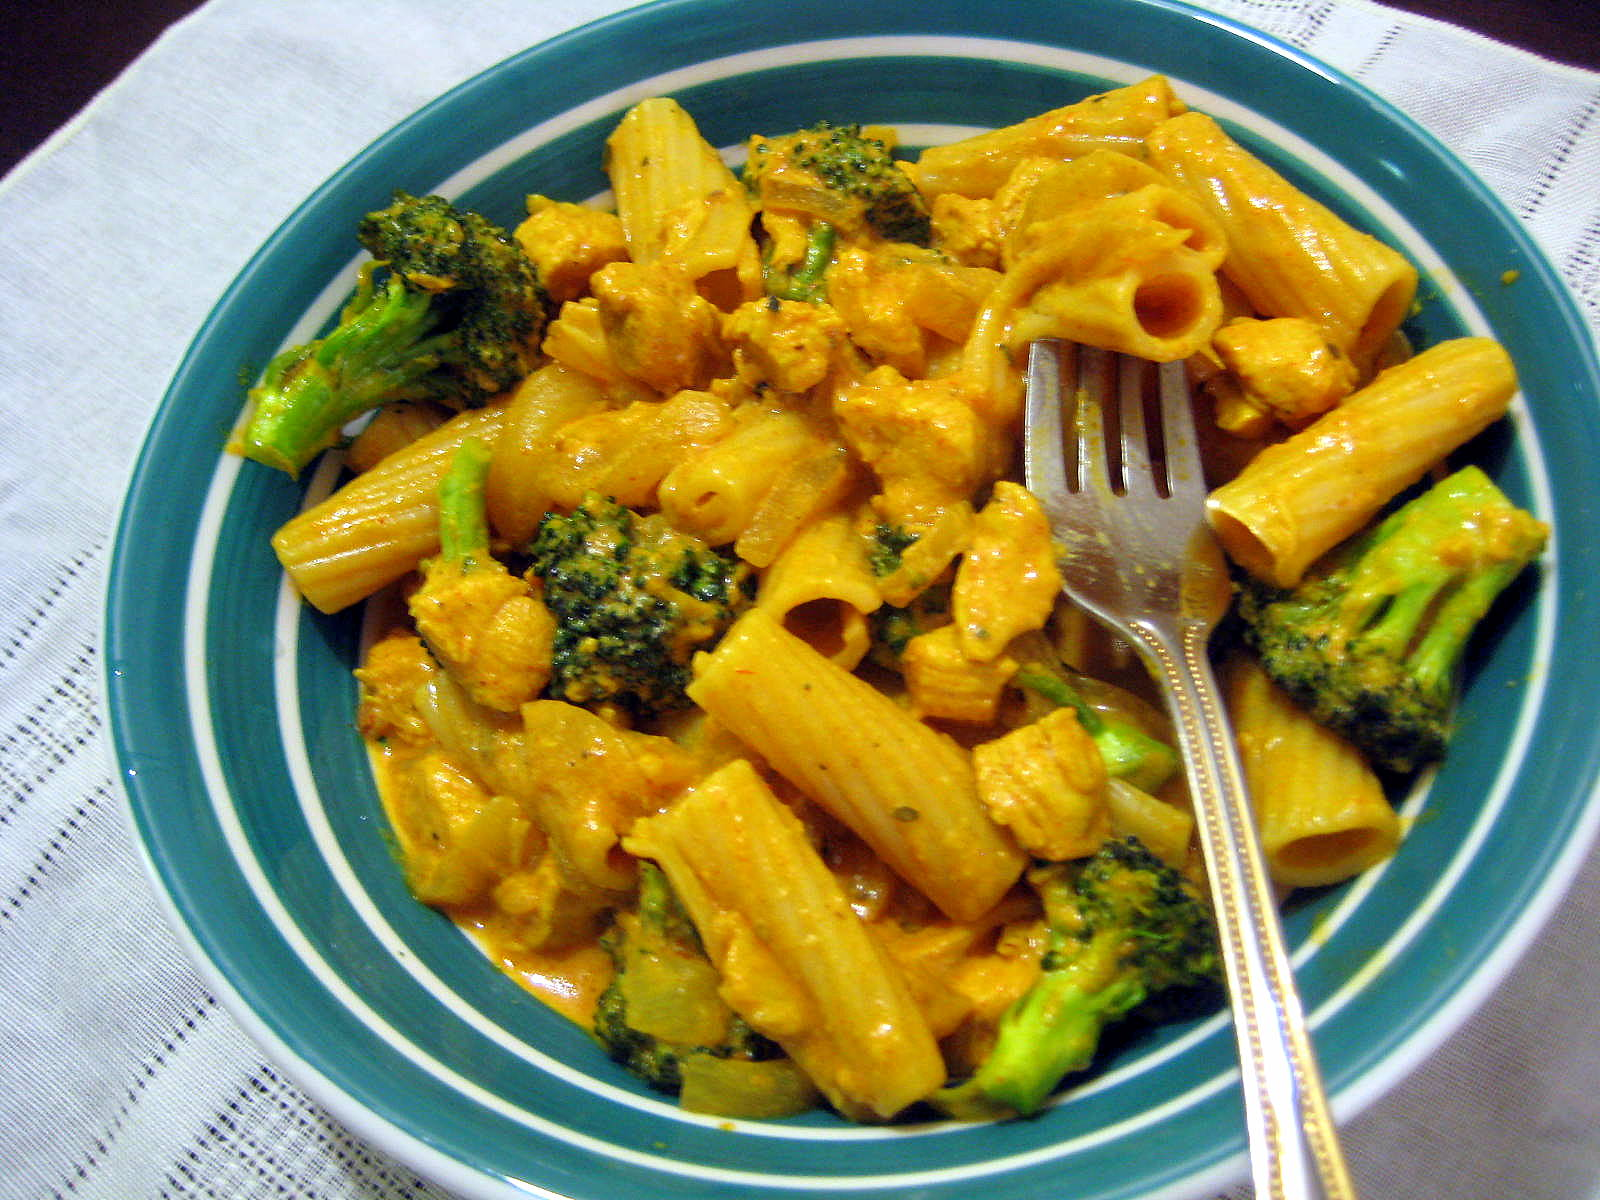 Posted by Nancy and Matt Categories: Chicken Dishes , Dinner Recipes ...